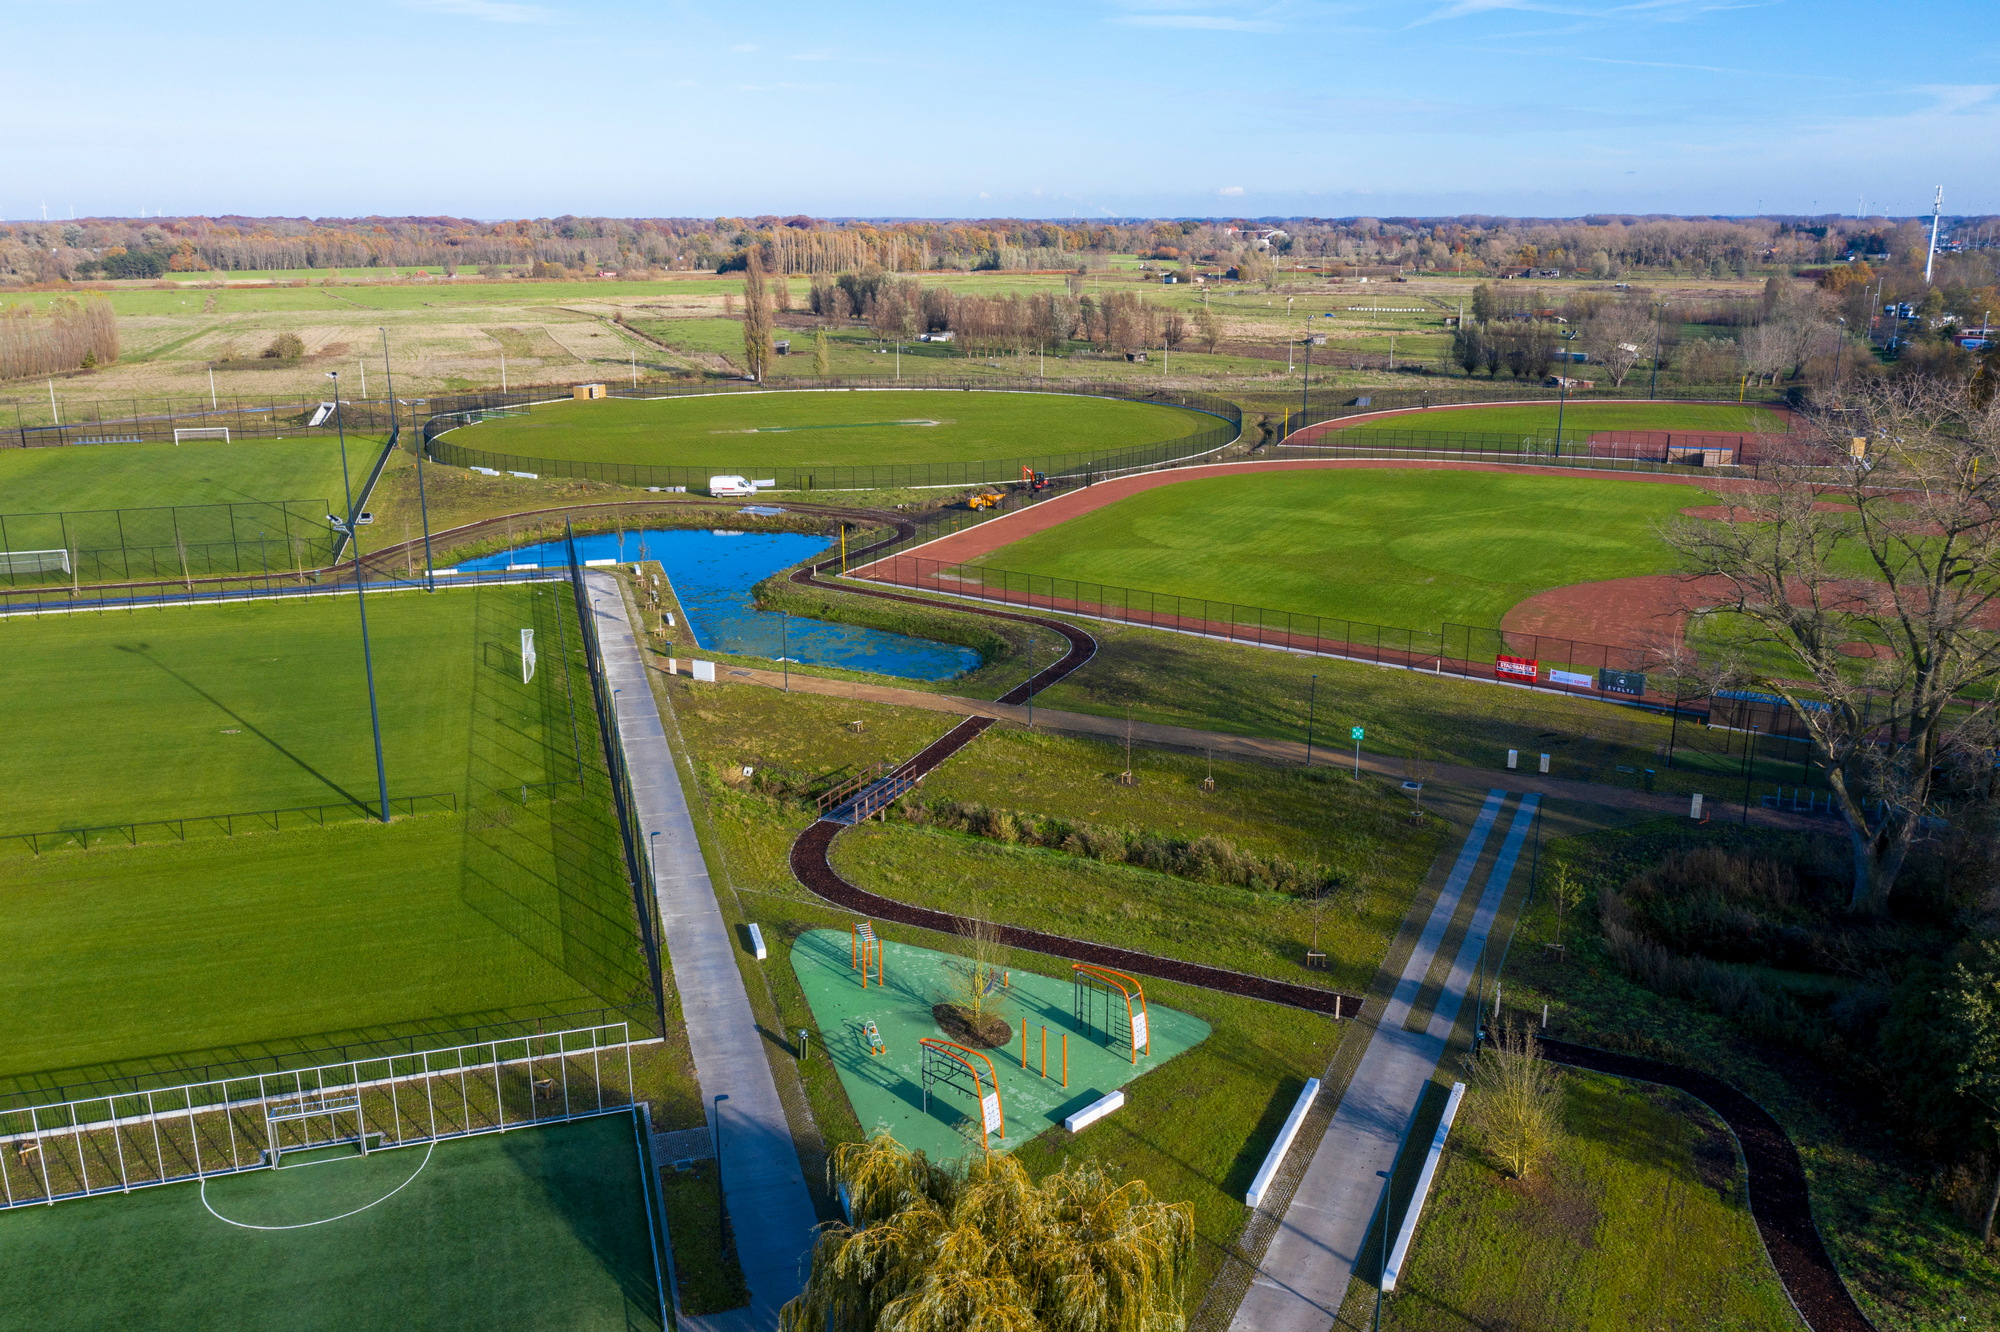 Sports center Gentbrugse Meersen